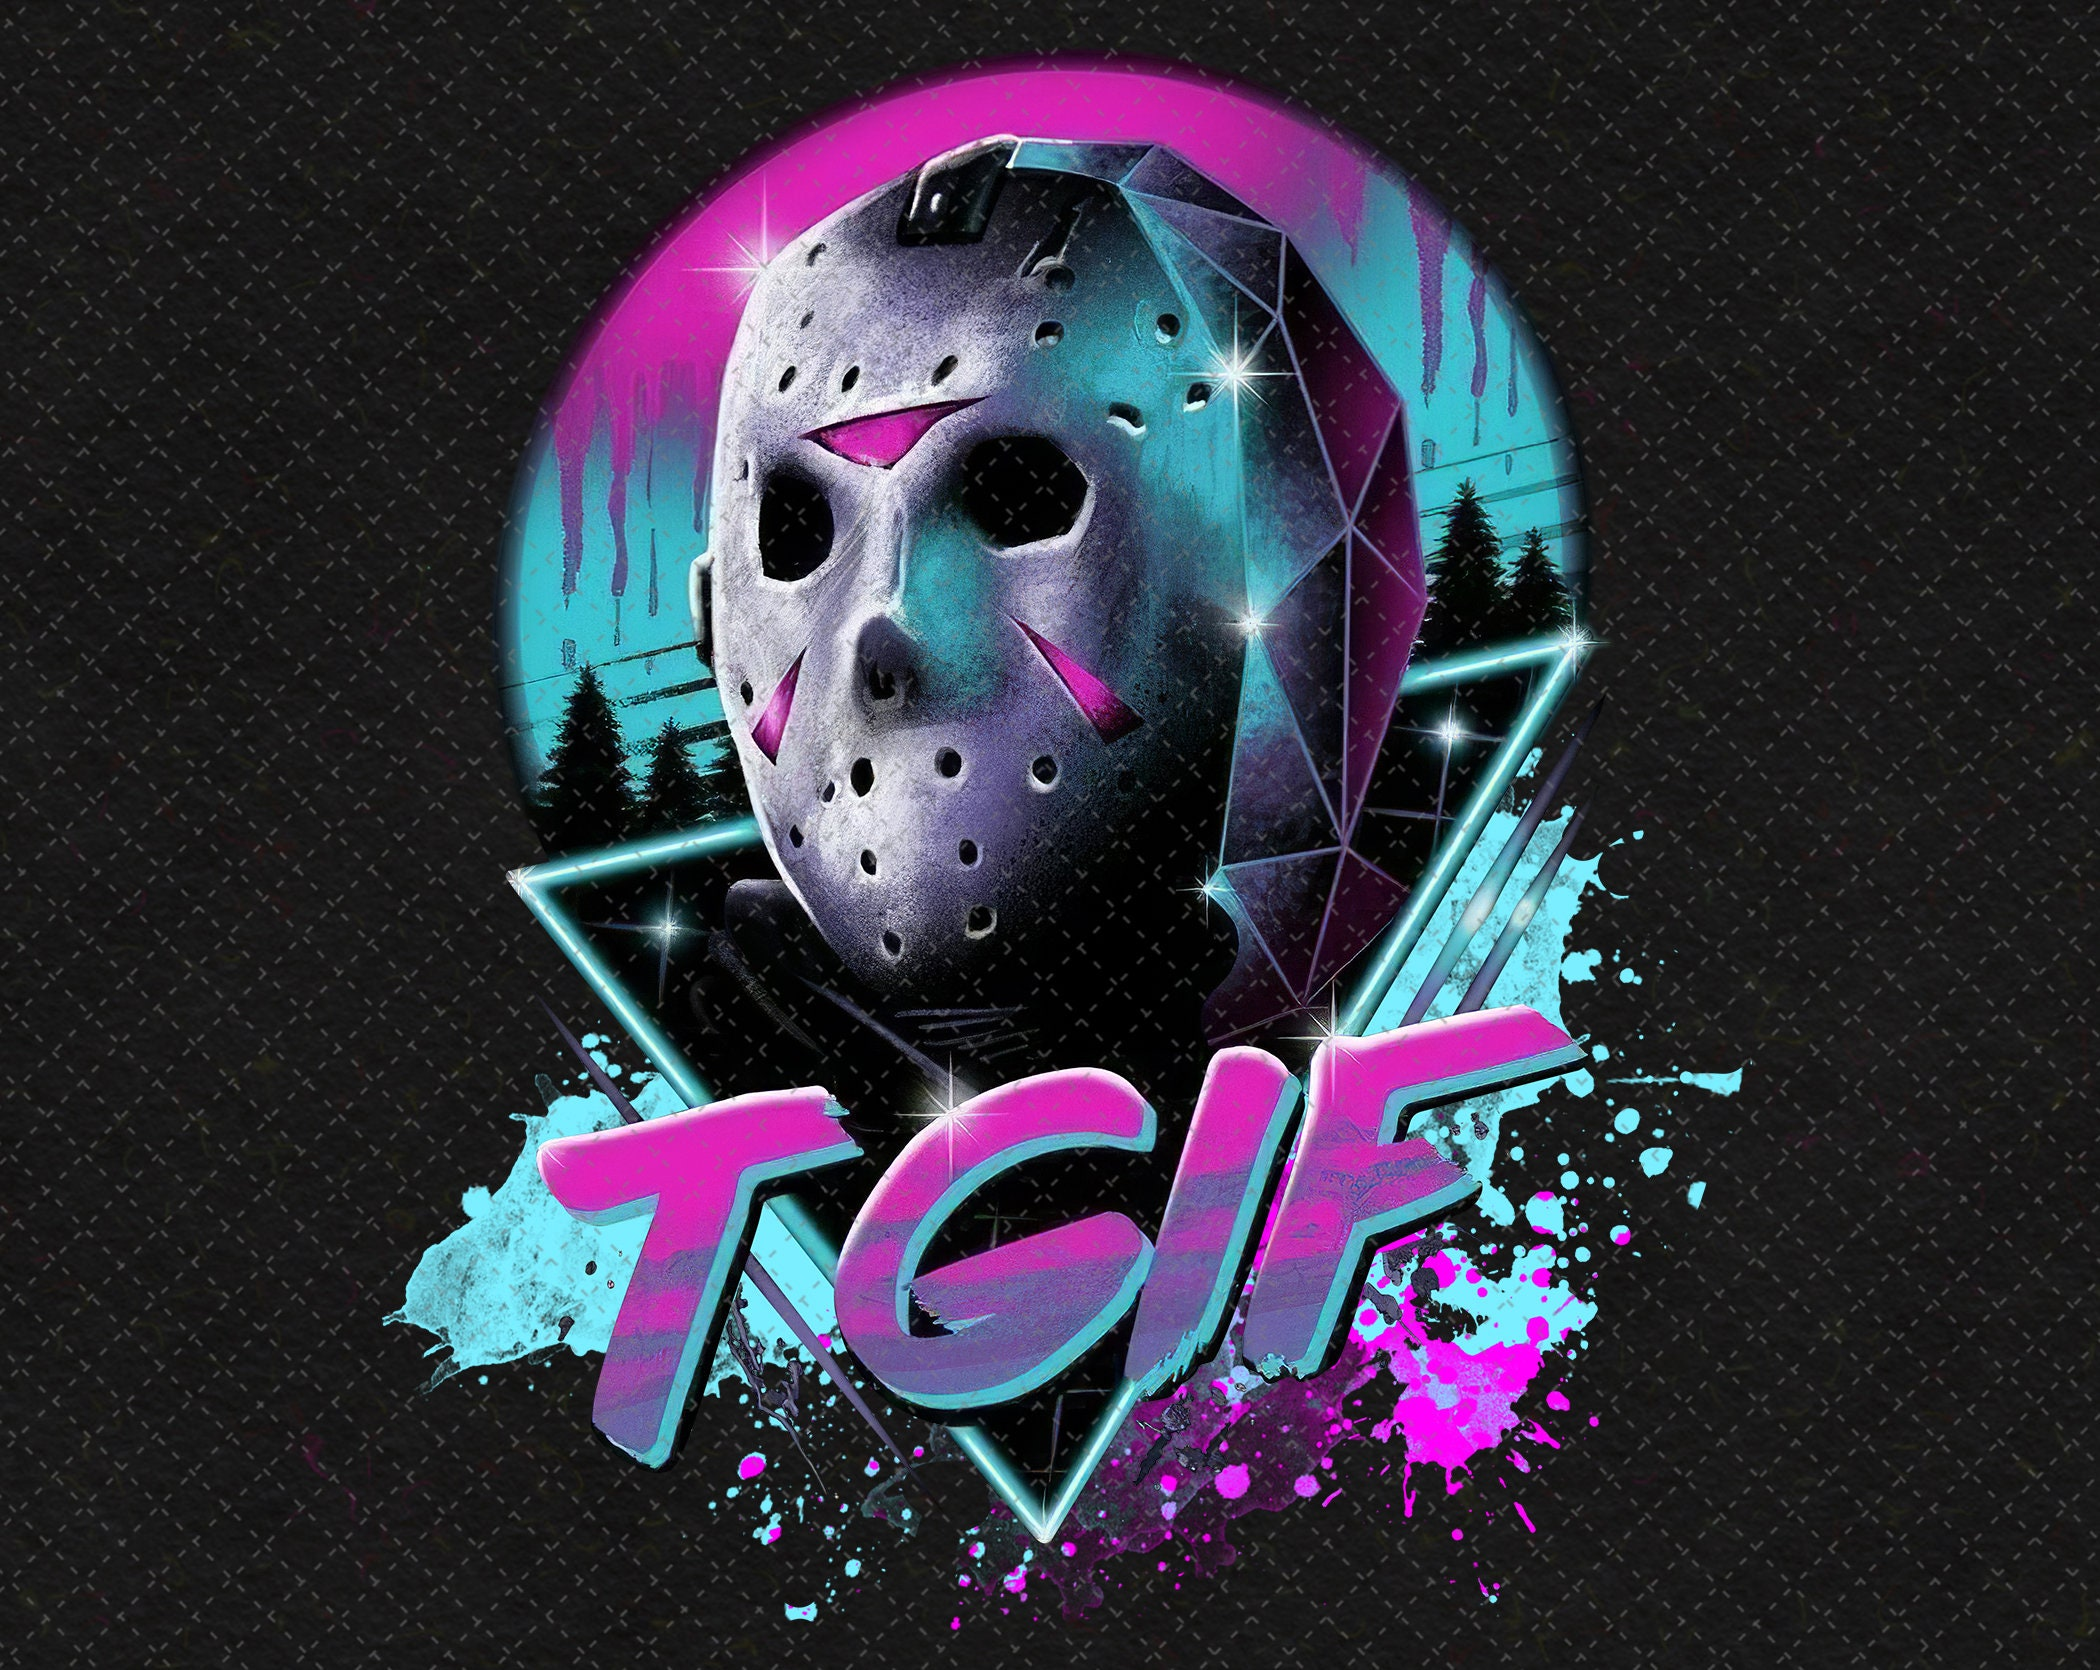 Jason Voorhees Mask Neon PNG Printable, Tgif Jason Voorhees Friday Horror, Png Files For Sublimation Designs Digital Download